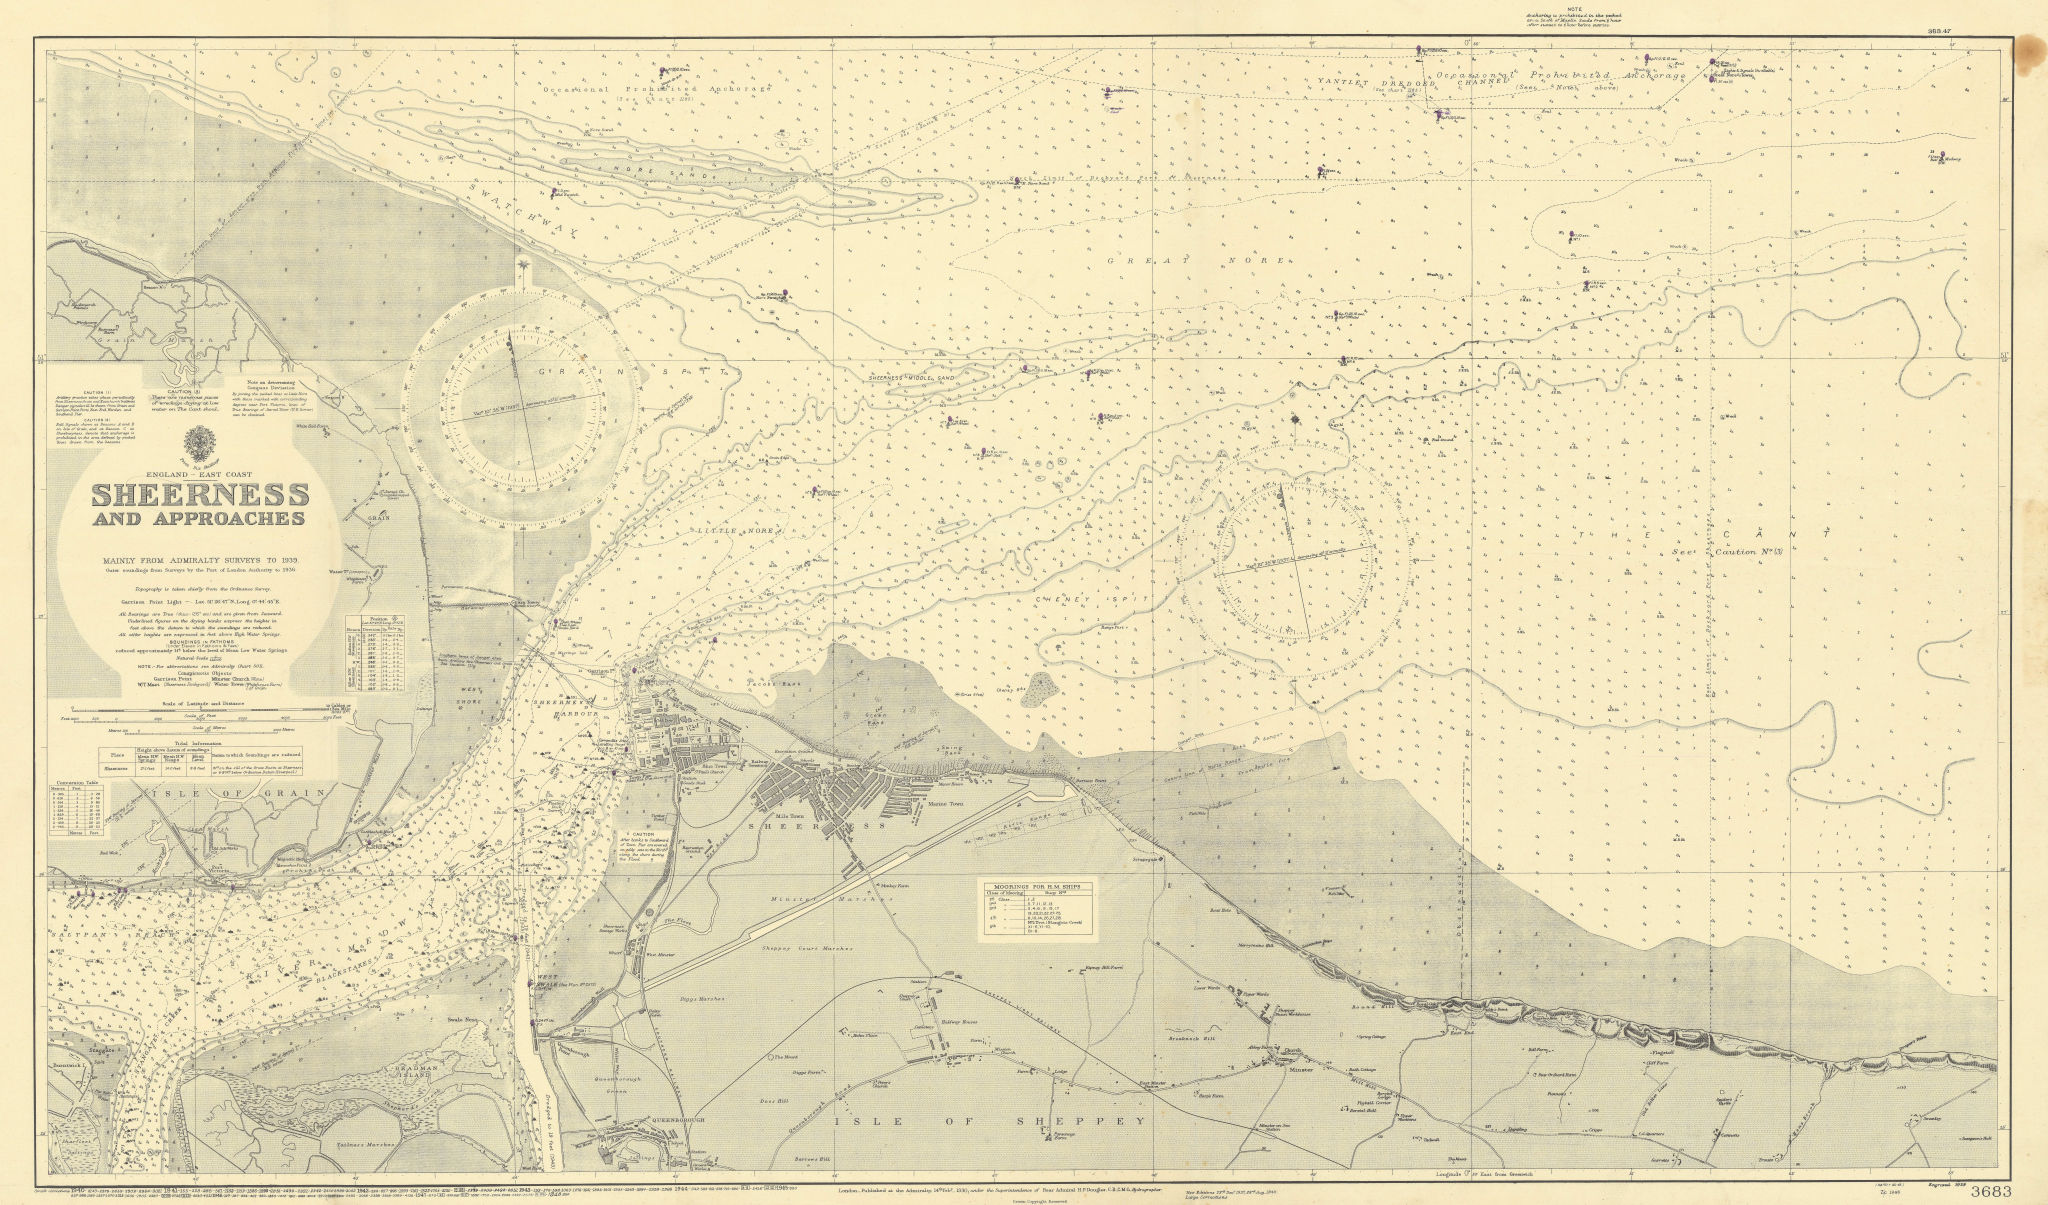 Sheerness & approaches. Medway Kent. ADMIRALTY sea chart 1930 (1948) old map